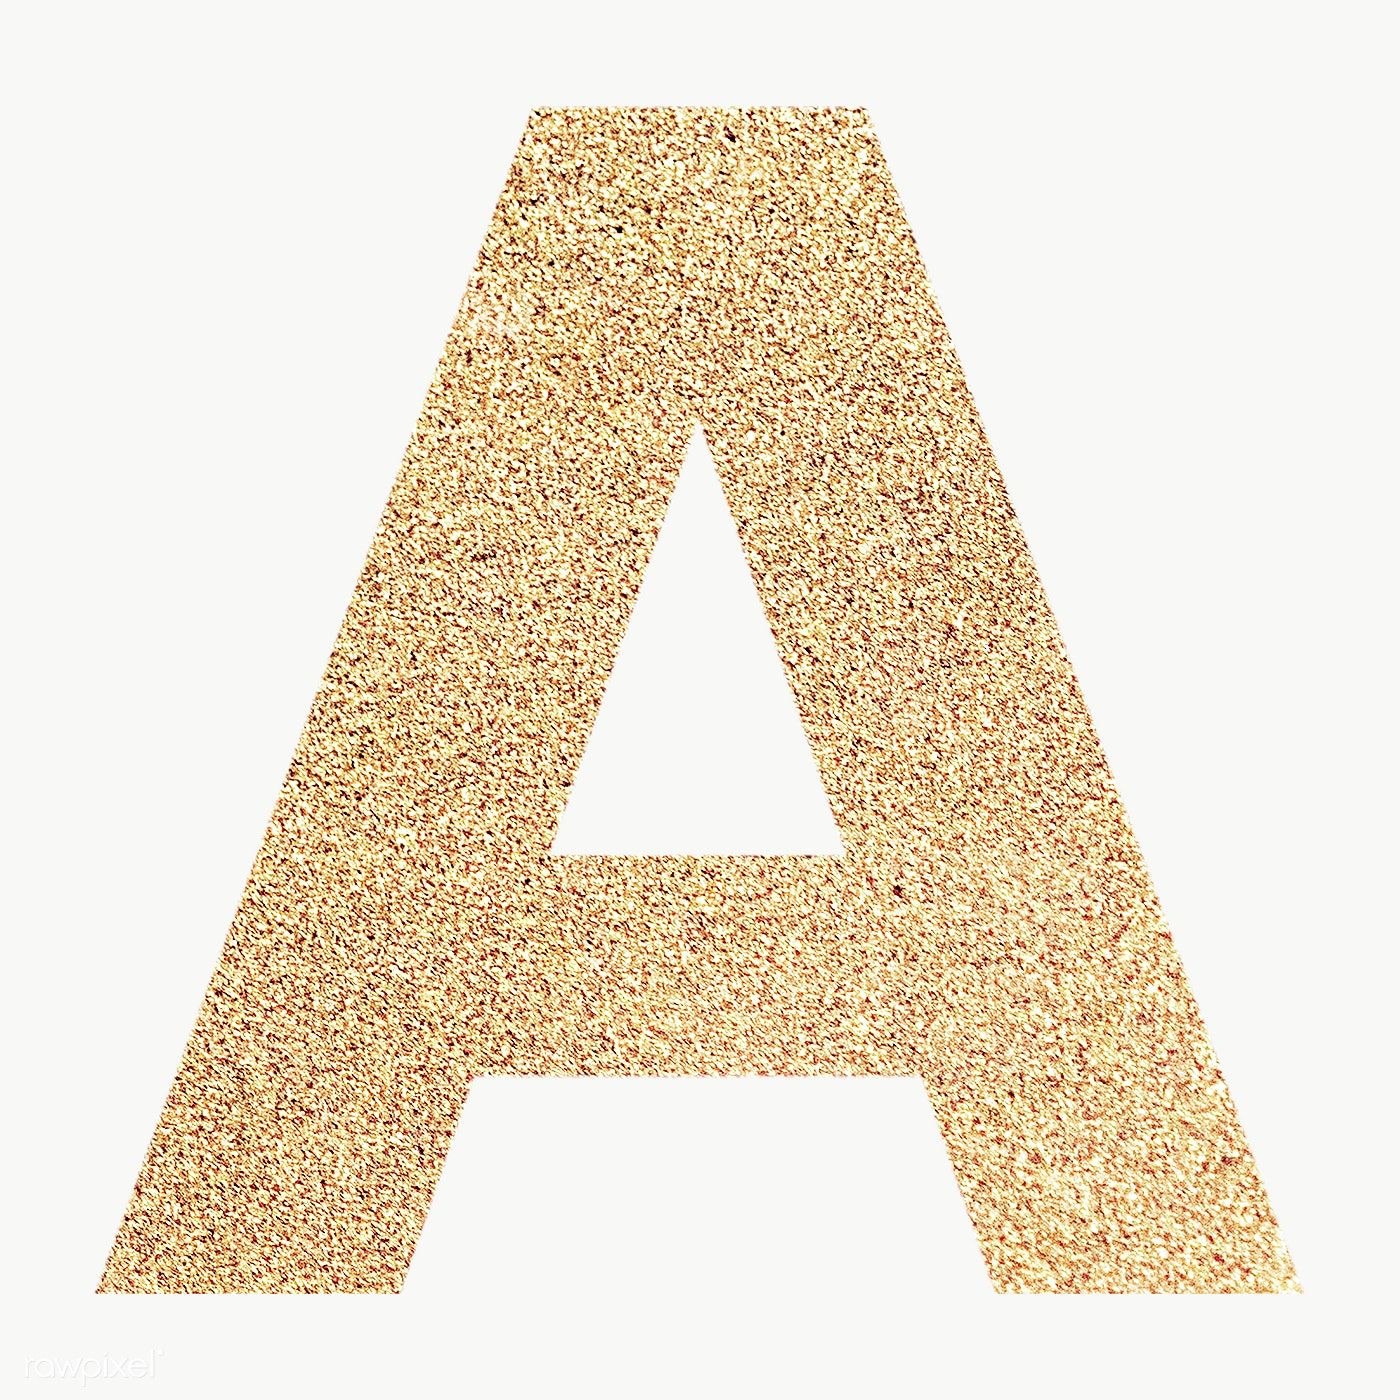 Glitter Capital Letter A Sticker Transparent Png Free Image By Rawpixel Com Ningzk V Transparent Stickers Heart Wallpaper Hd Lettering Alphabet